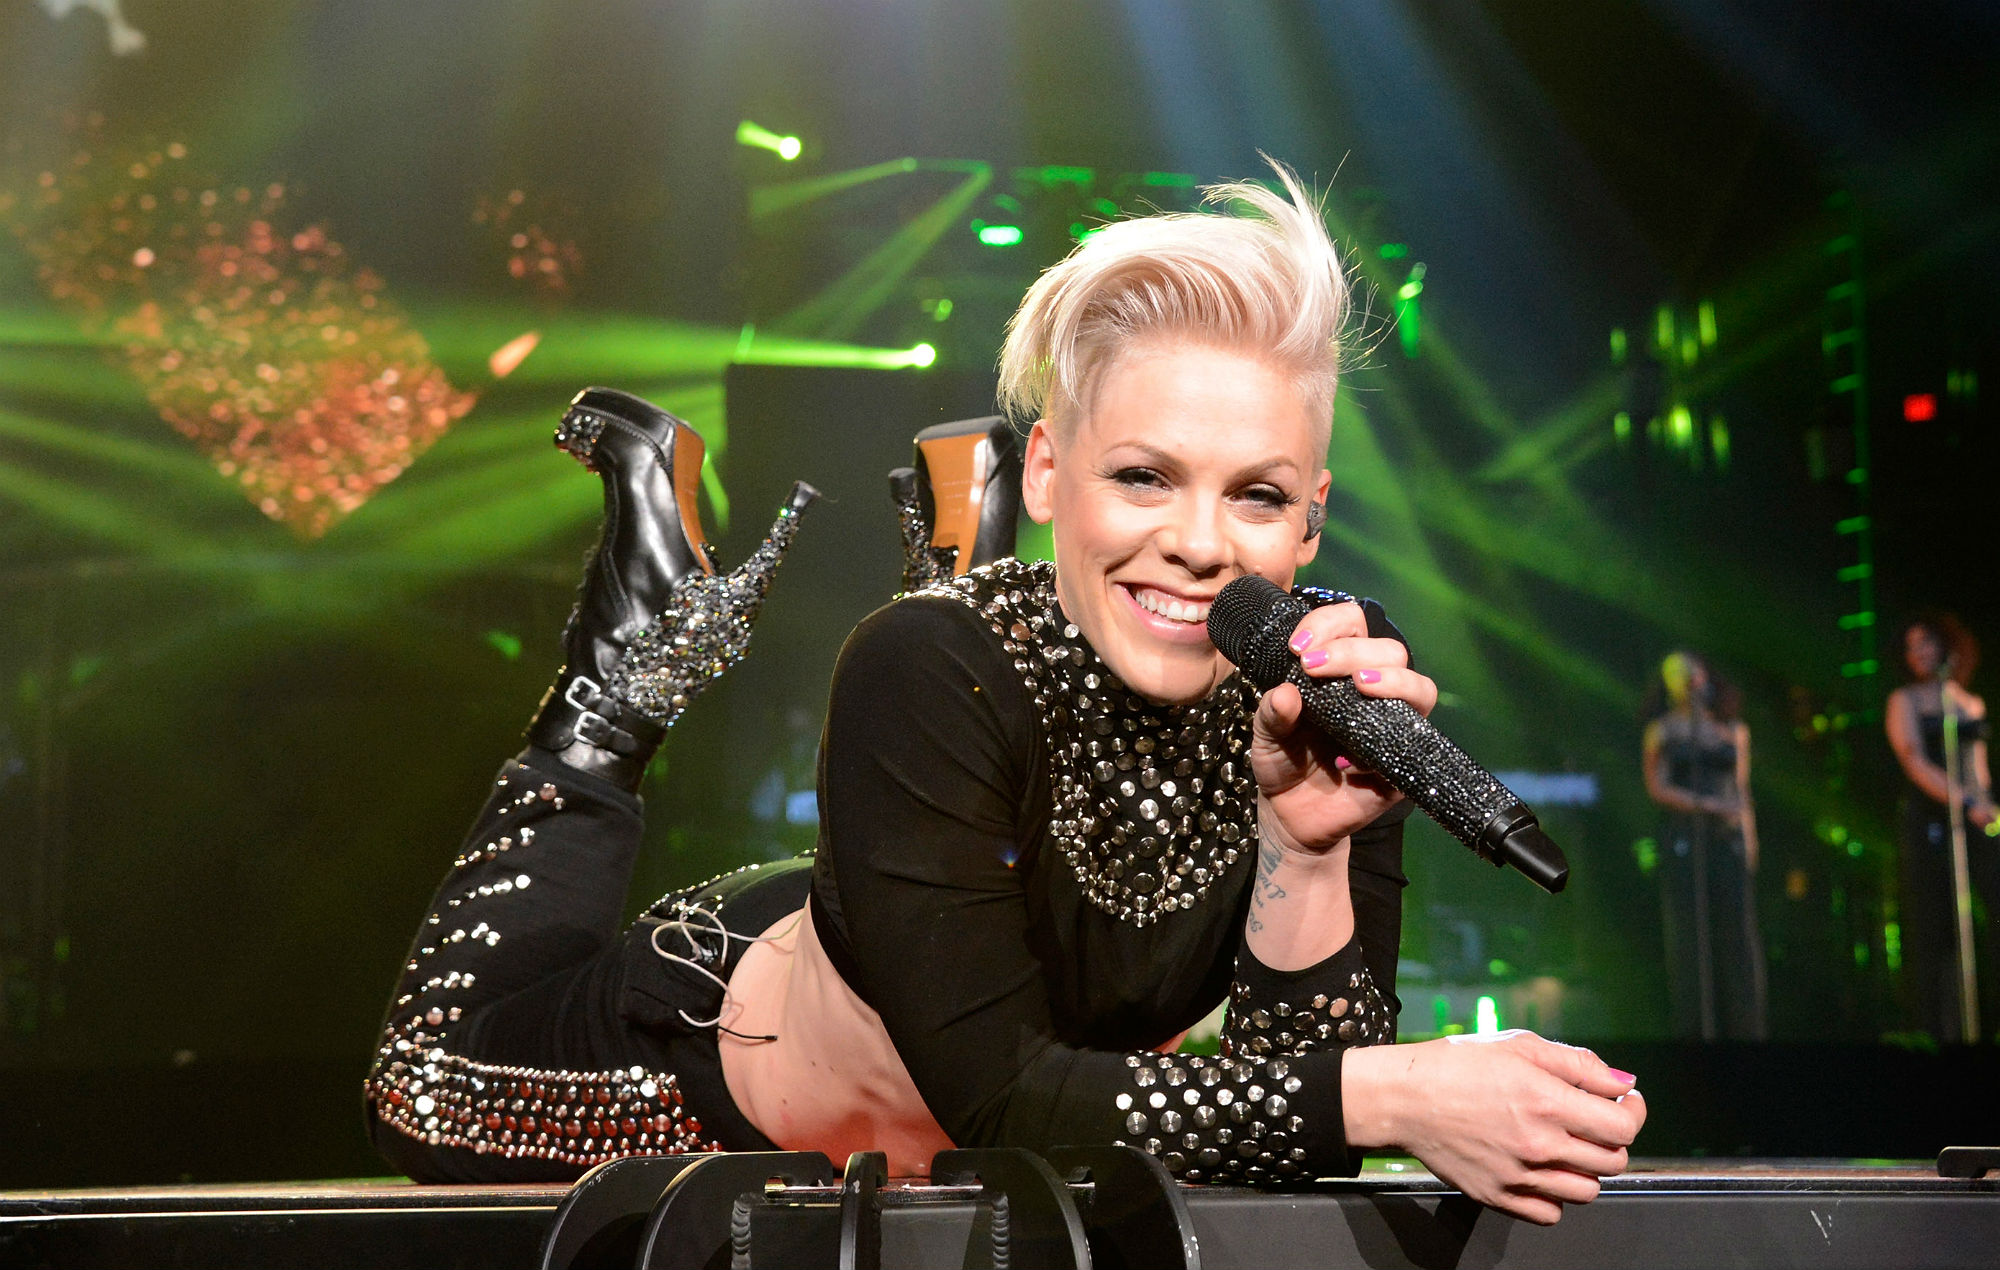 Top-20-Highest-Grossing-Female-Artist-Tours-In-History-3